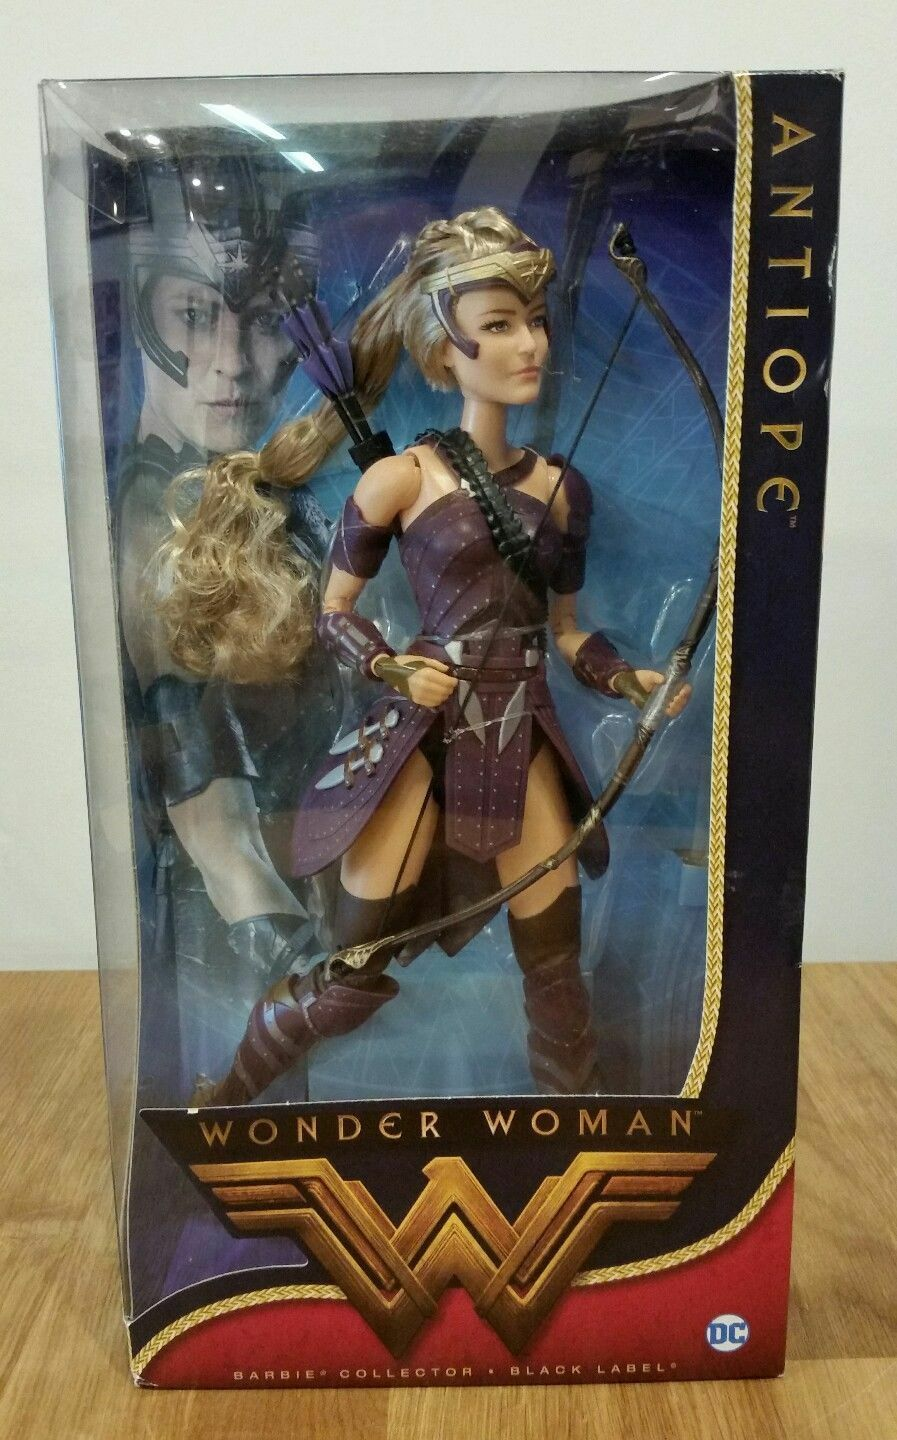 BARBIE WONDER donna COLLECTOR DOLL ANTIOPE nero LABEL DC COMICS DWD84